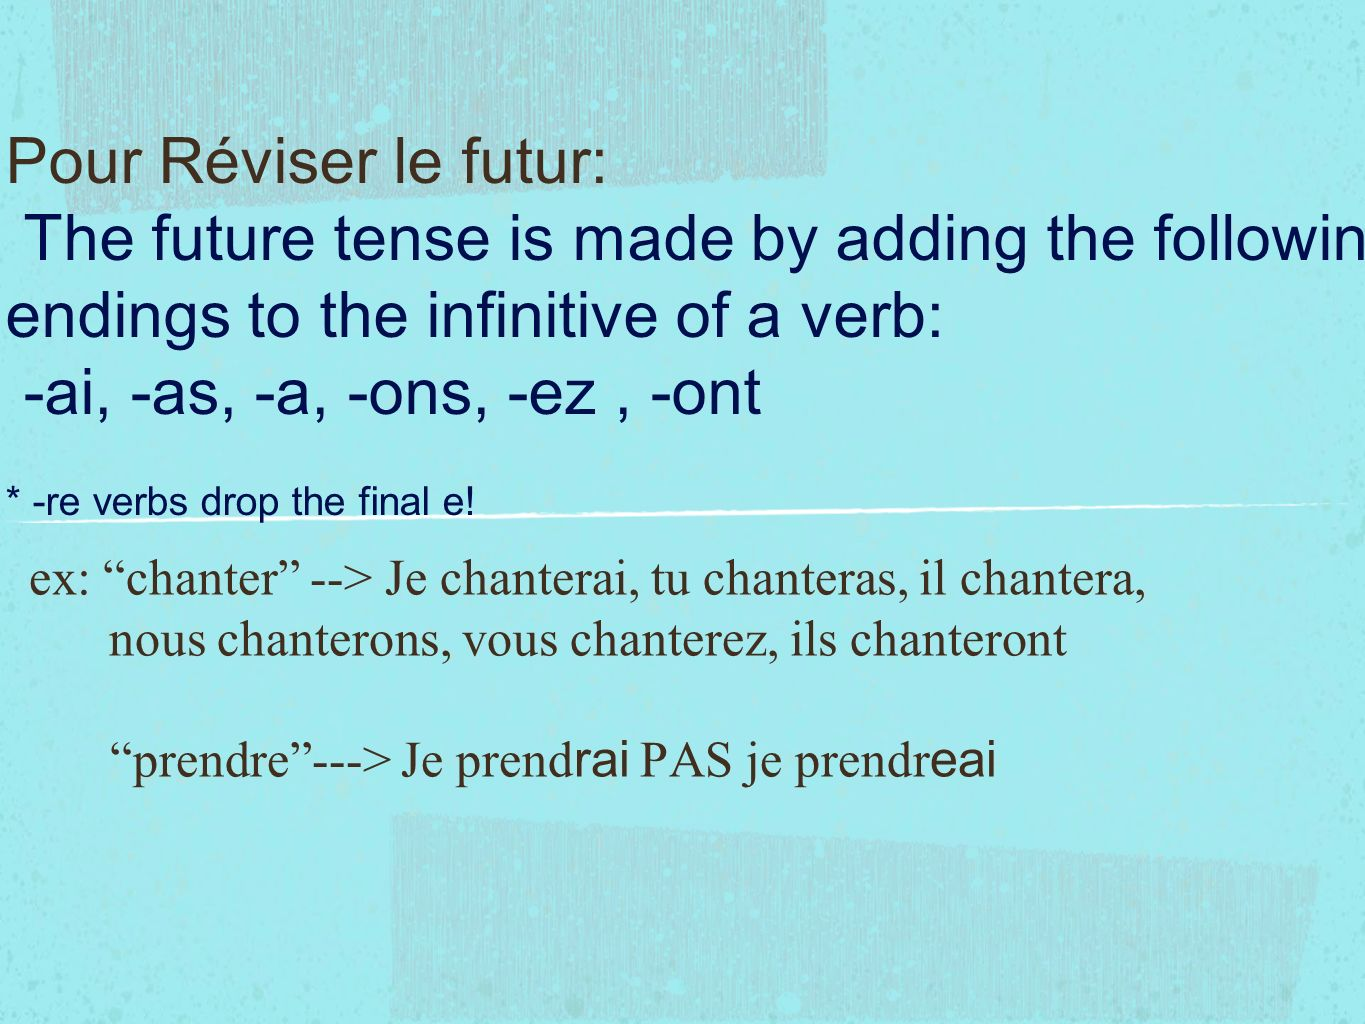 Pour Réviser le futur: The future tense is made by adding the following endings to the infinitive of a verb: -ai, -as, -a, -ons, -ez, -ont * -re verbs drop the final e.